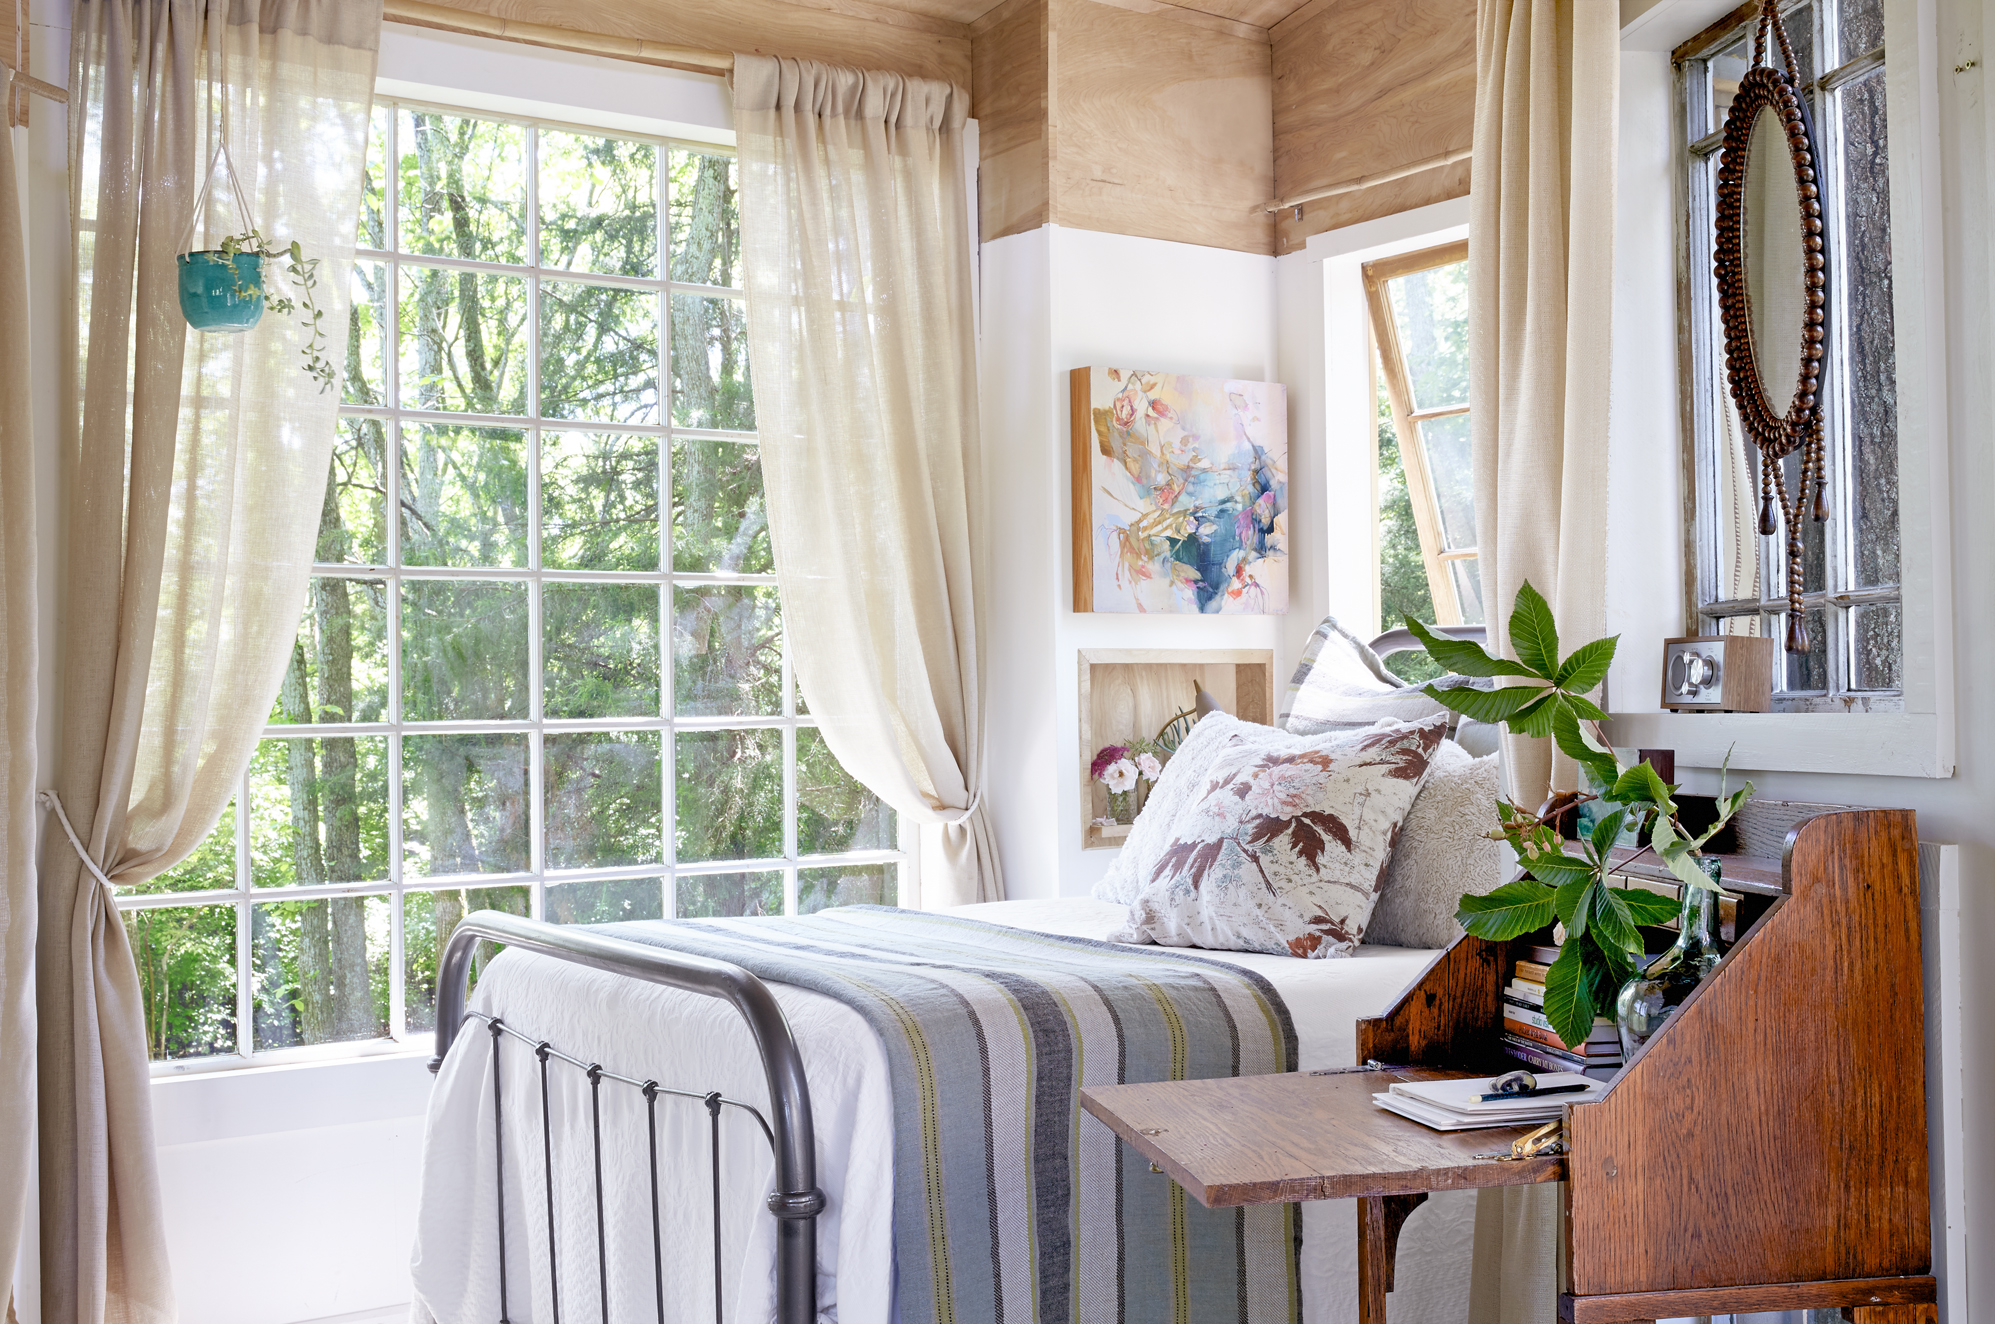 101 bedroom decorating ideas in 2017  designs for